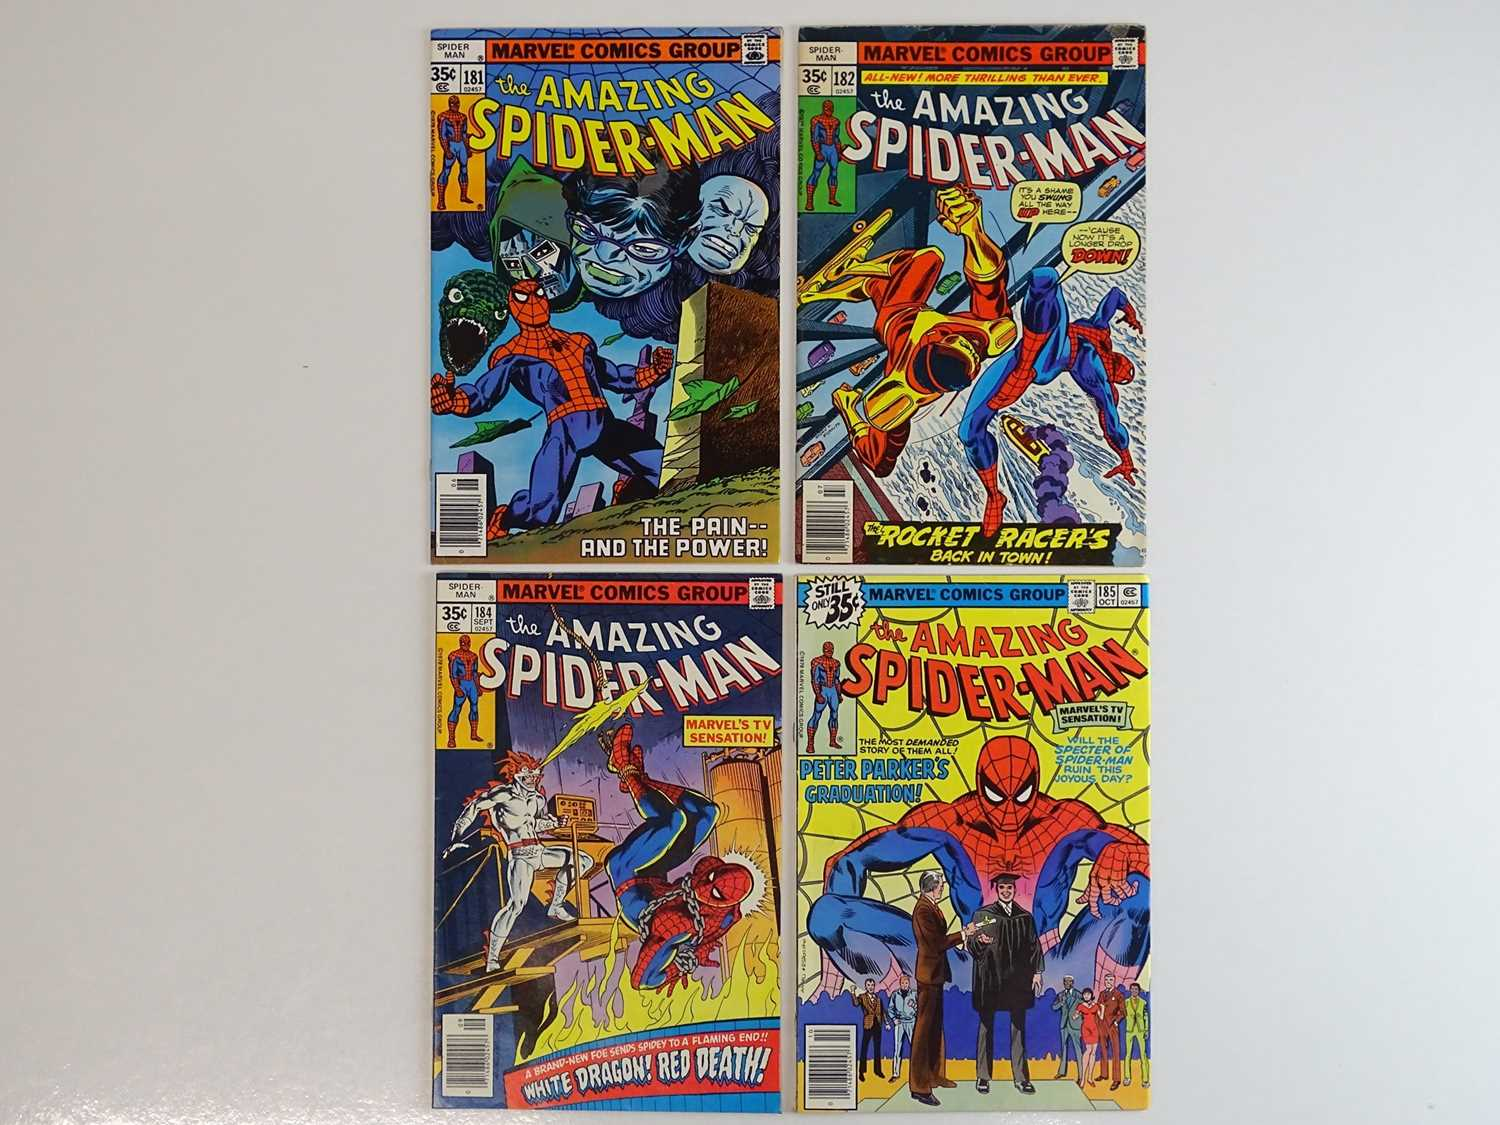 AMAZING SPIDER-MAN #181, 182, 184, 185 - (4 in Lot) - (1978 - MARVEL) - Includes First appearance of